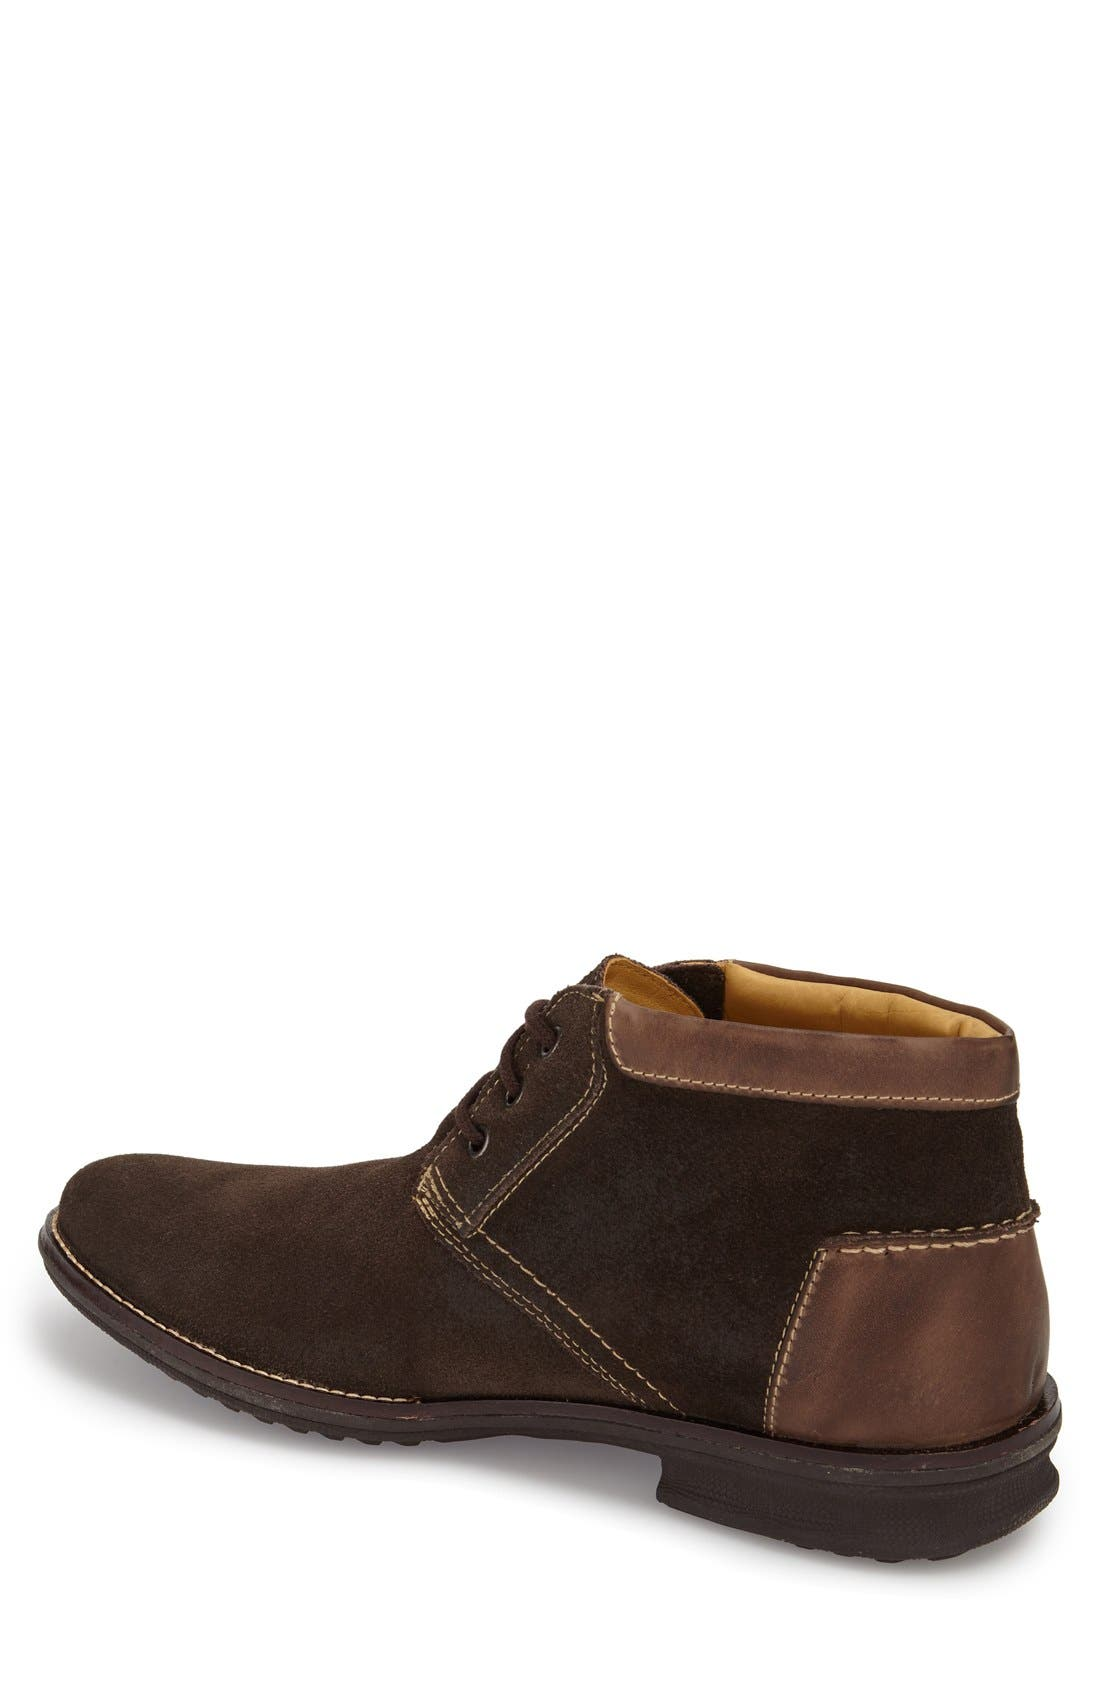 'Travis' Chukka Boot,                             Alternate thumbnail 2, color,                             200